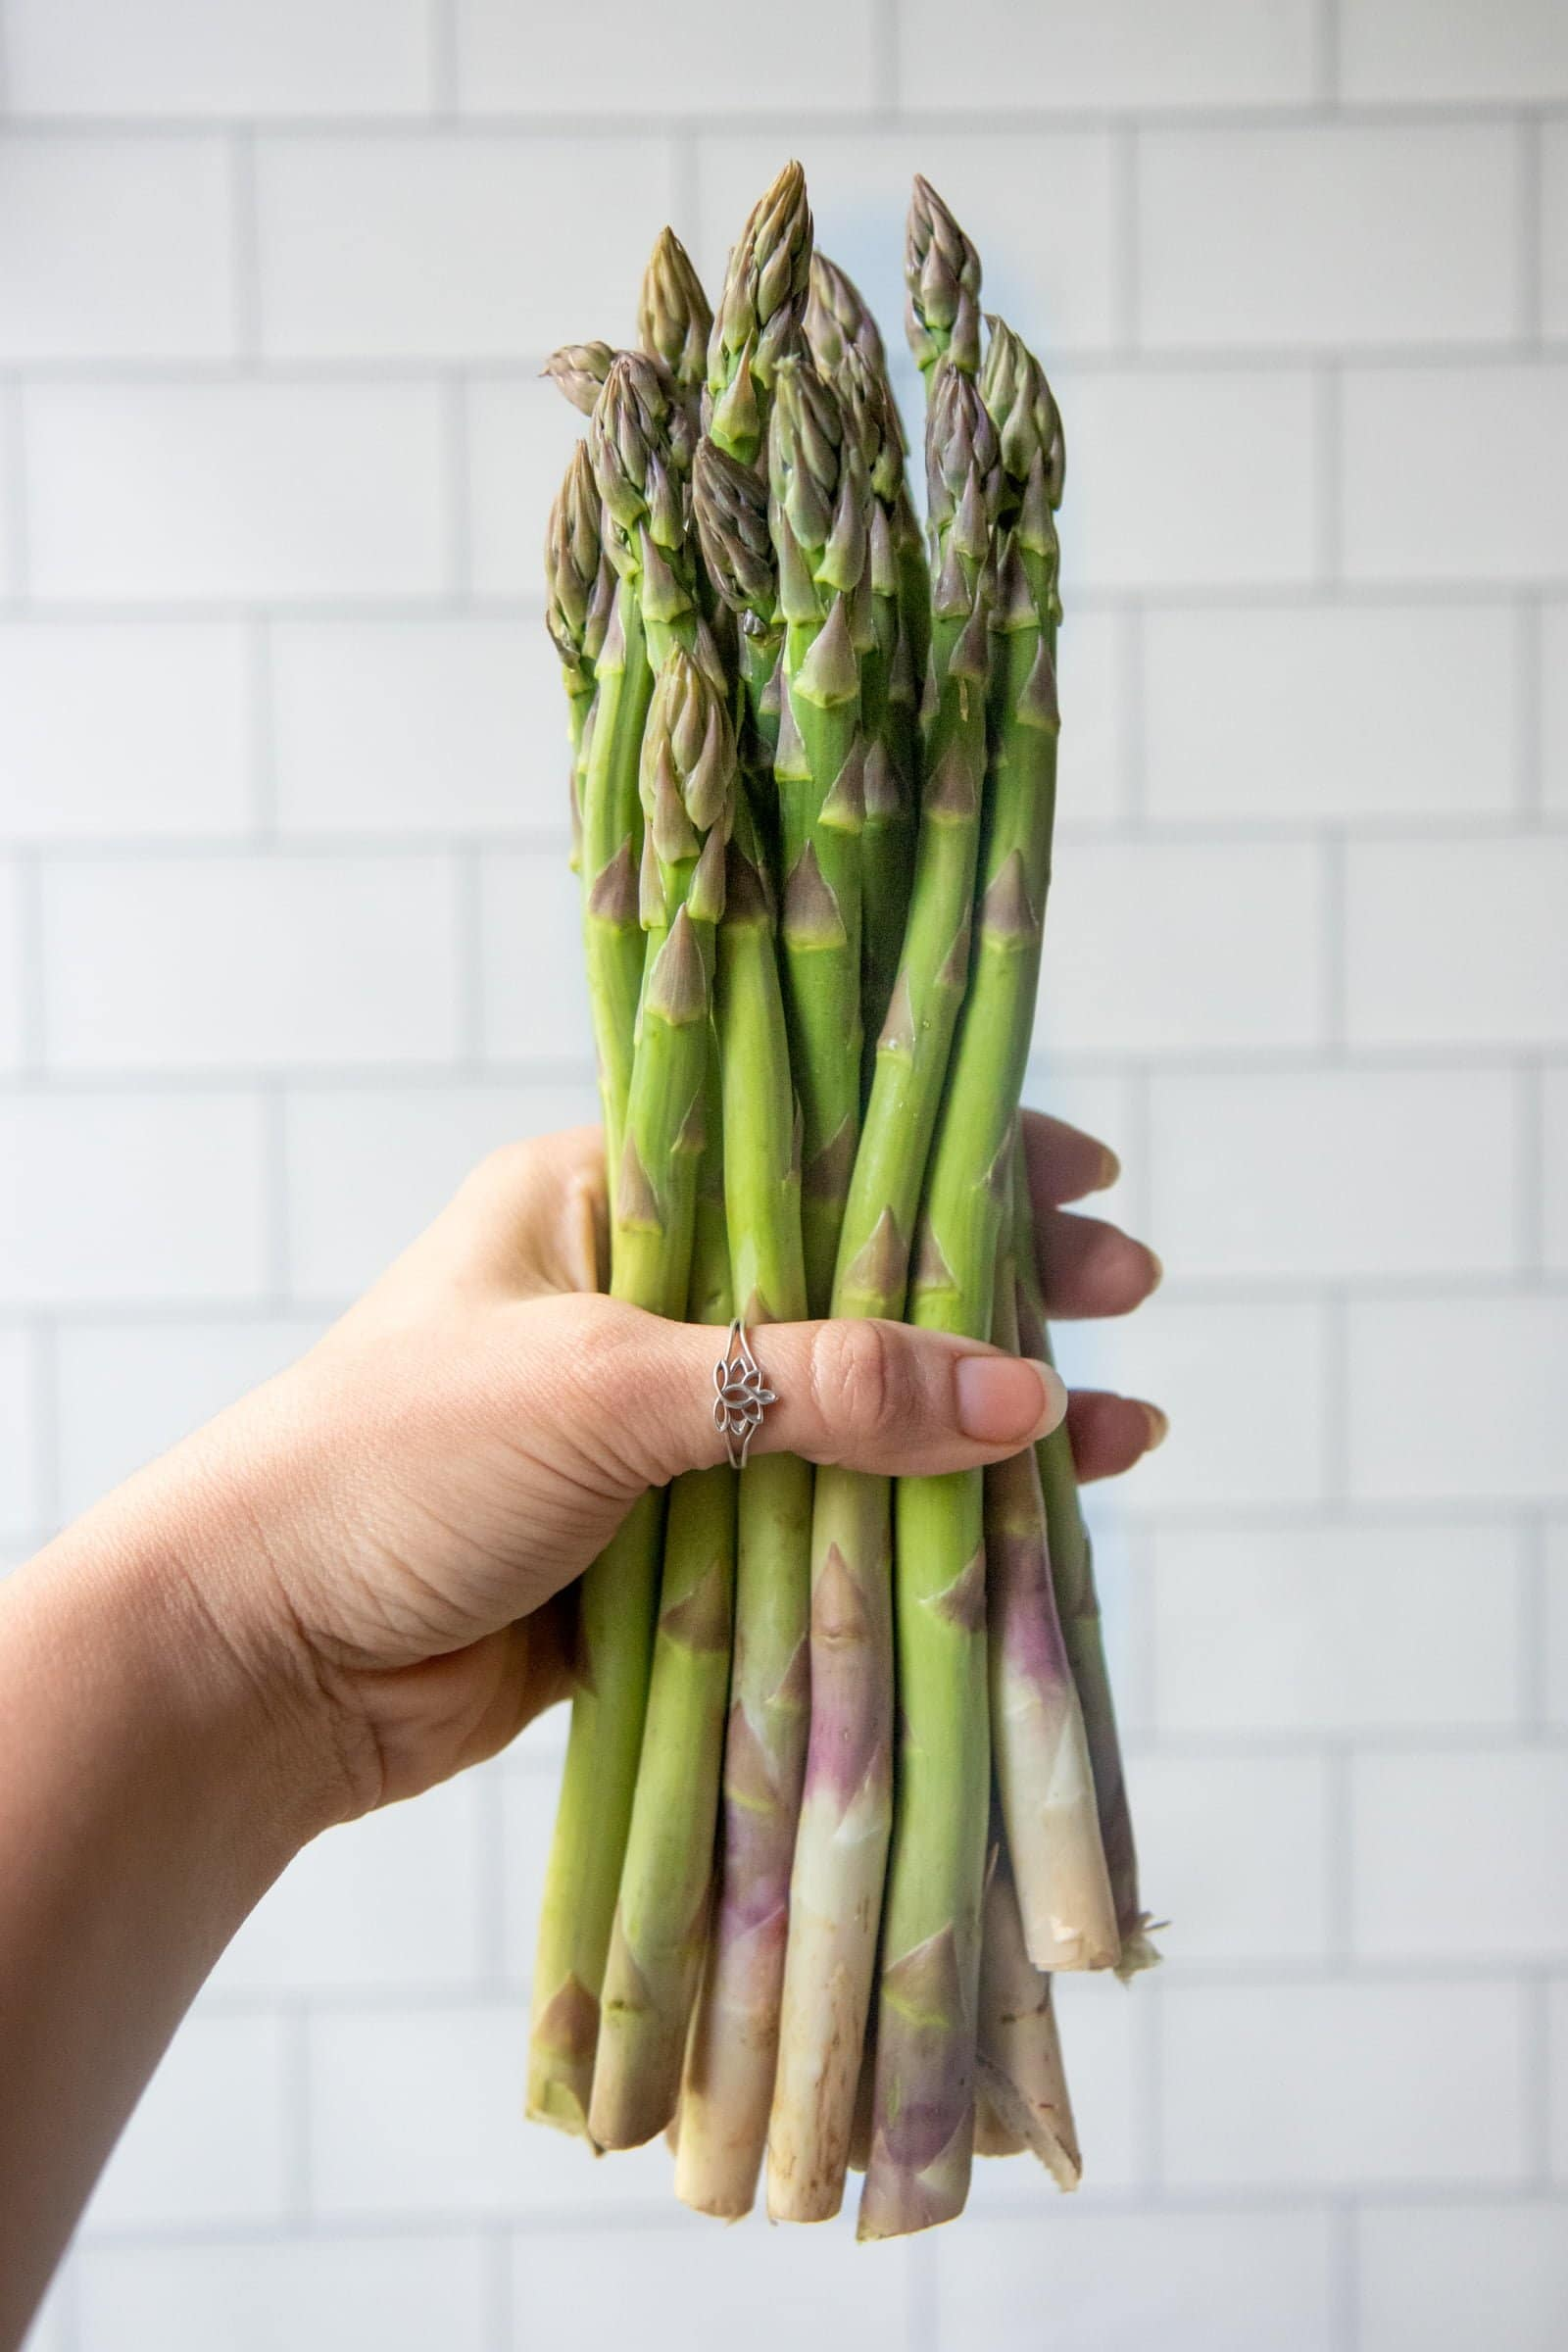 Hand holding a bunch of asparagus in front of a white background.